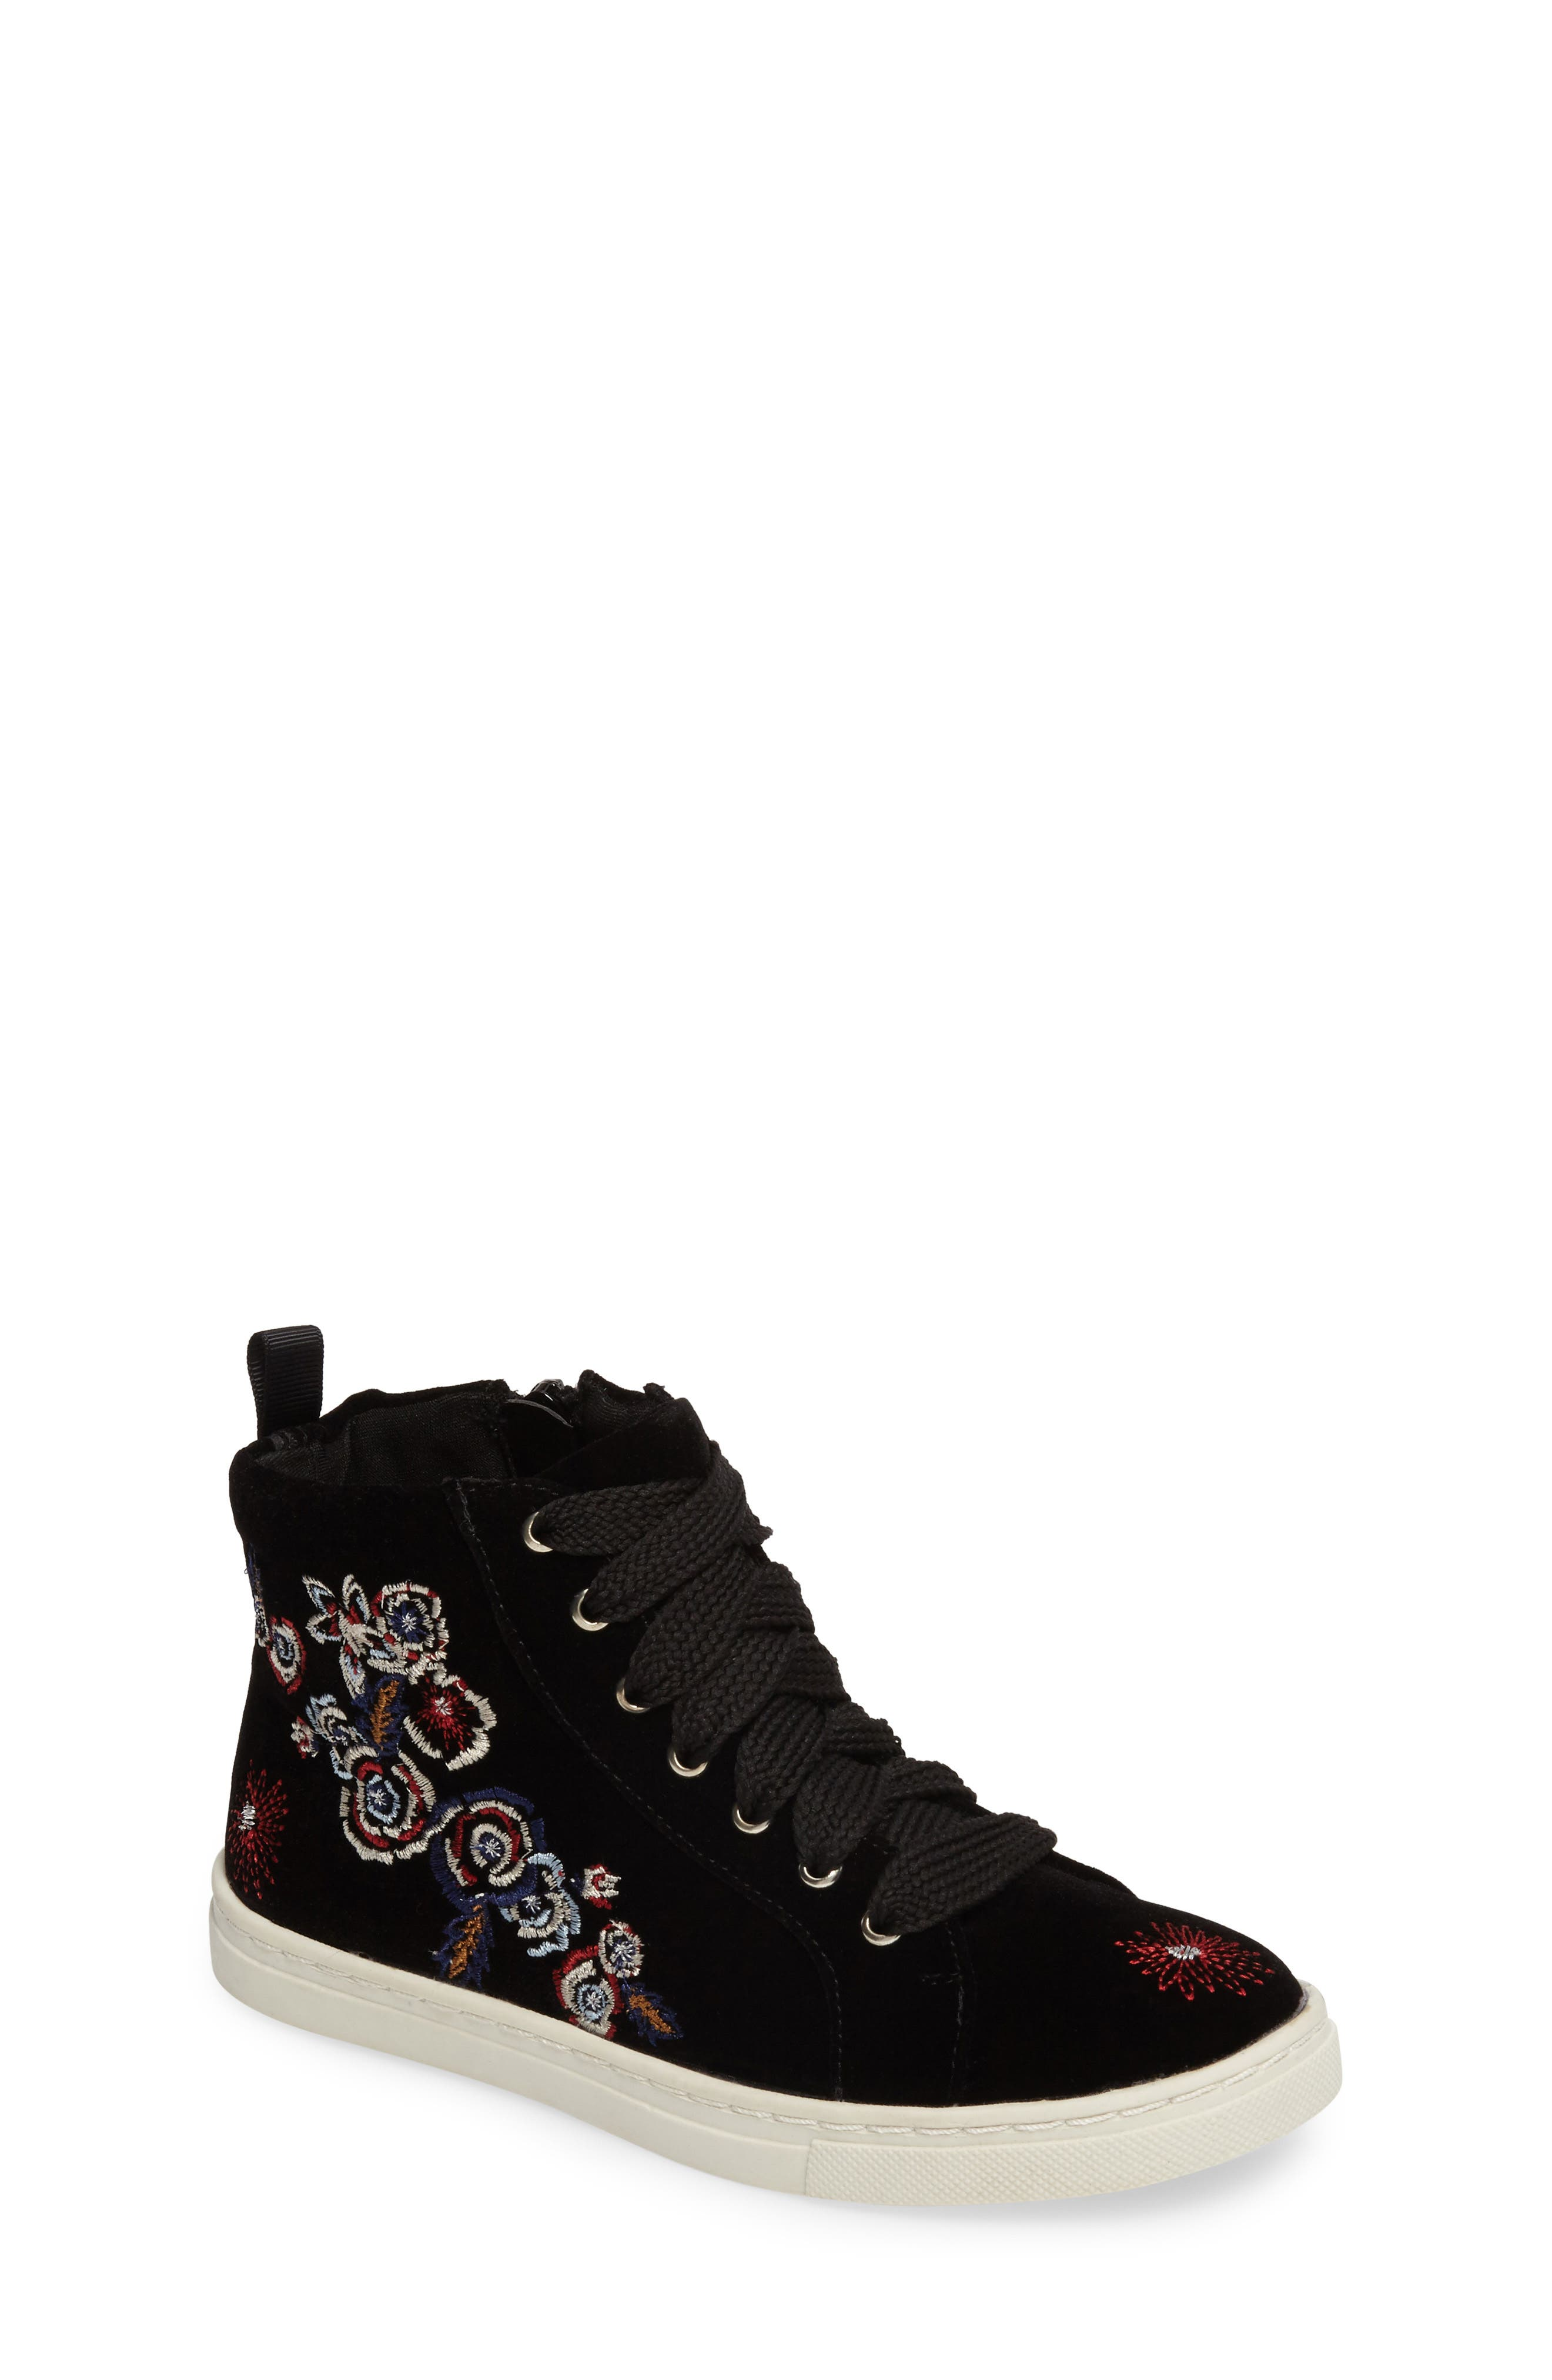 Zowen Embroidered High Top Sneaker,                             Main thumbnail 1, color,                             003